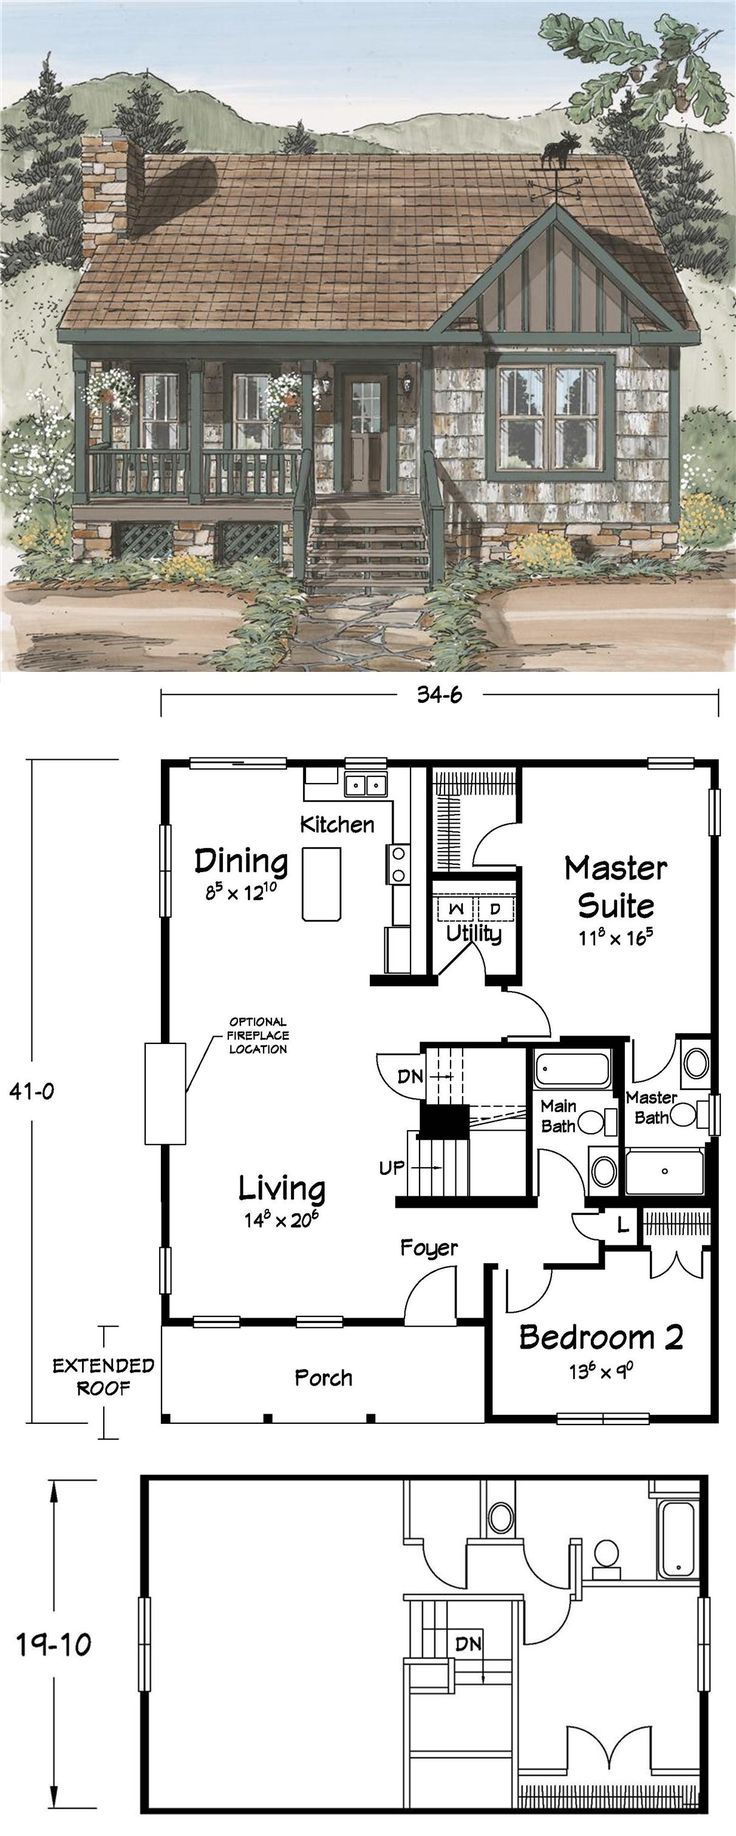 Cute floor plans tiny homes pinterest cabin small Guest house layout plan